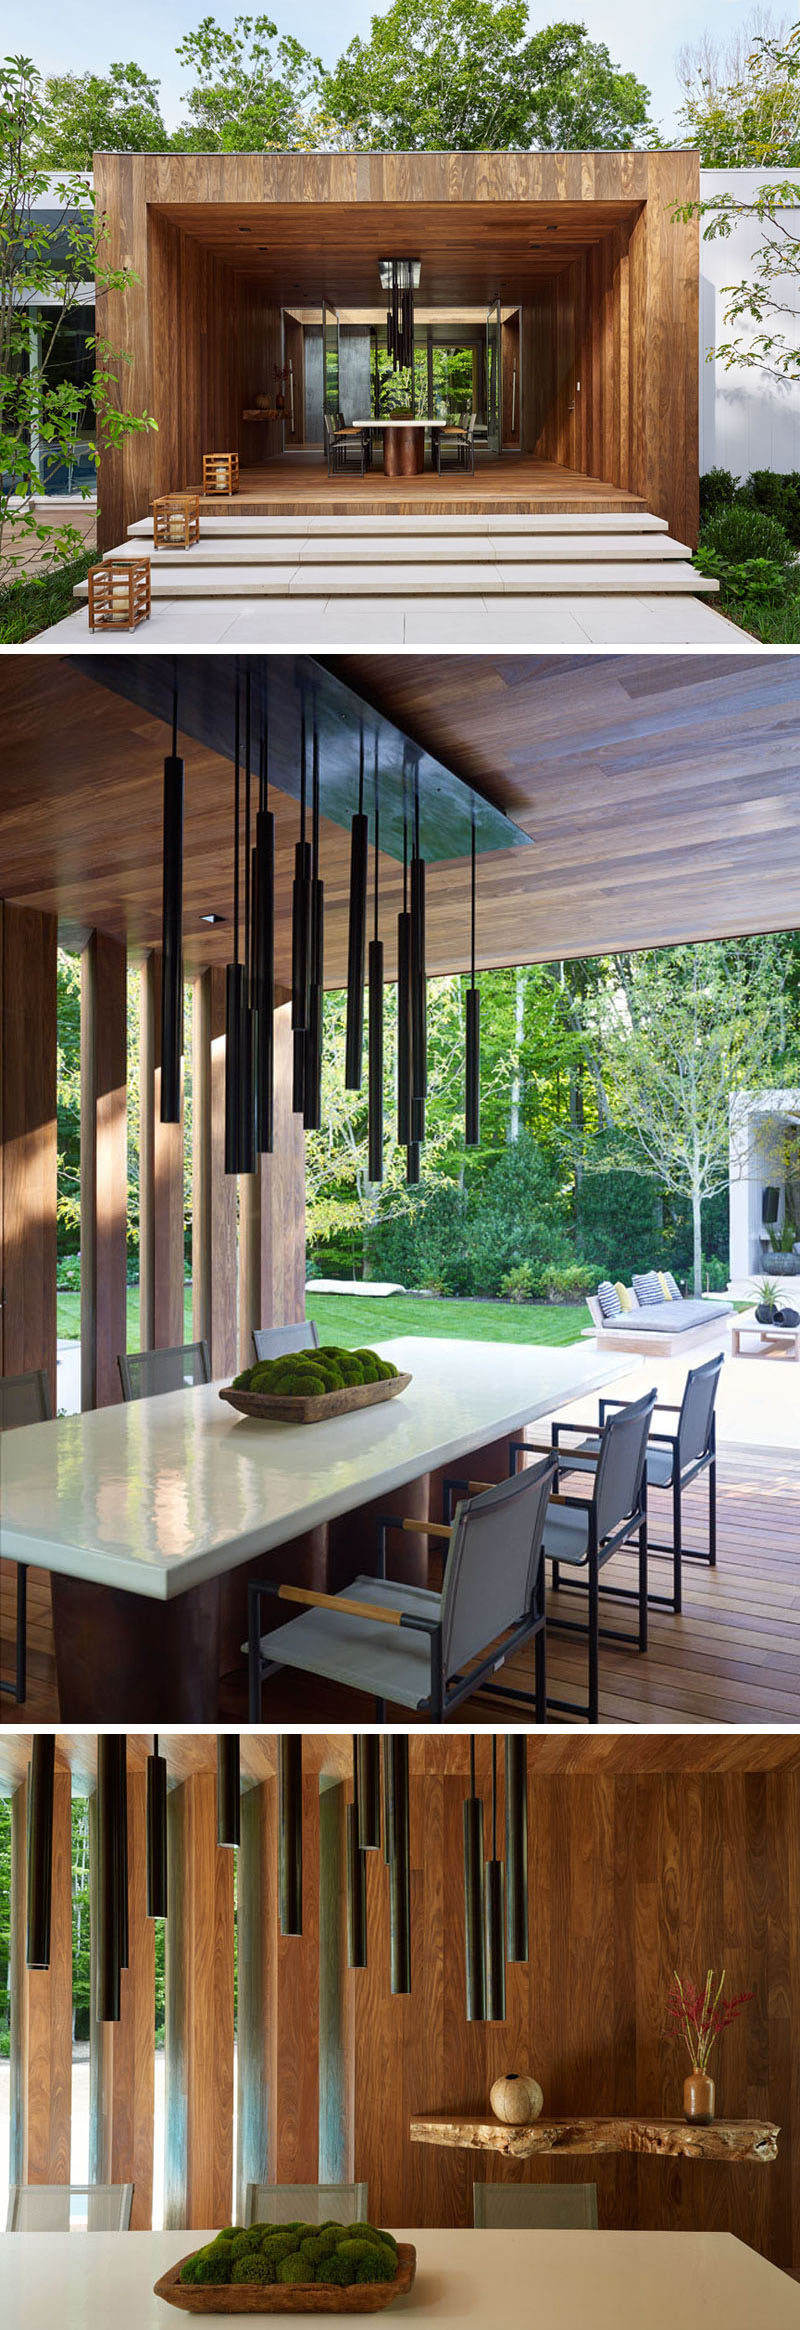 This home has a partially enclosed wooden outdoor area set up as a dining room, perfect for enjoying meals outside when the weather is nice.